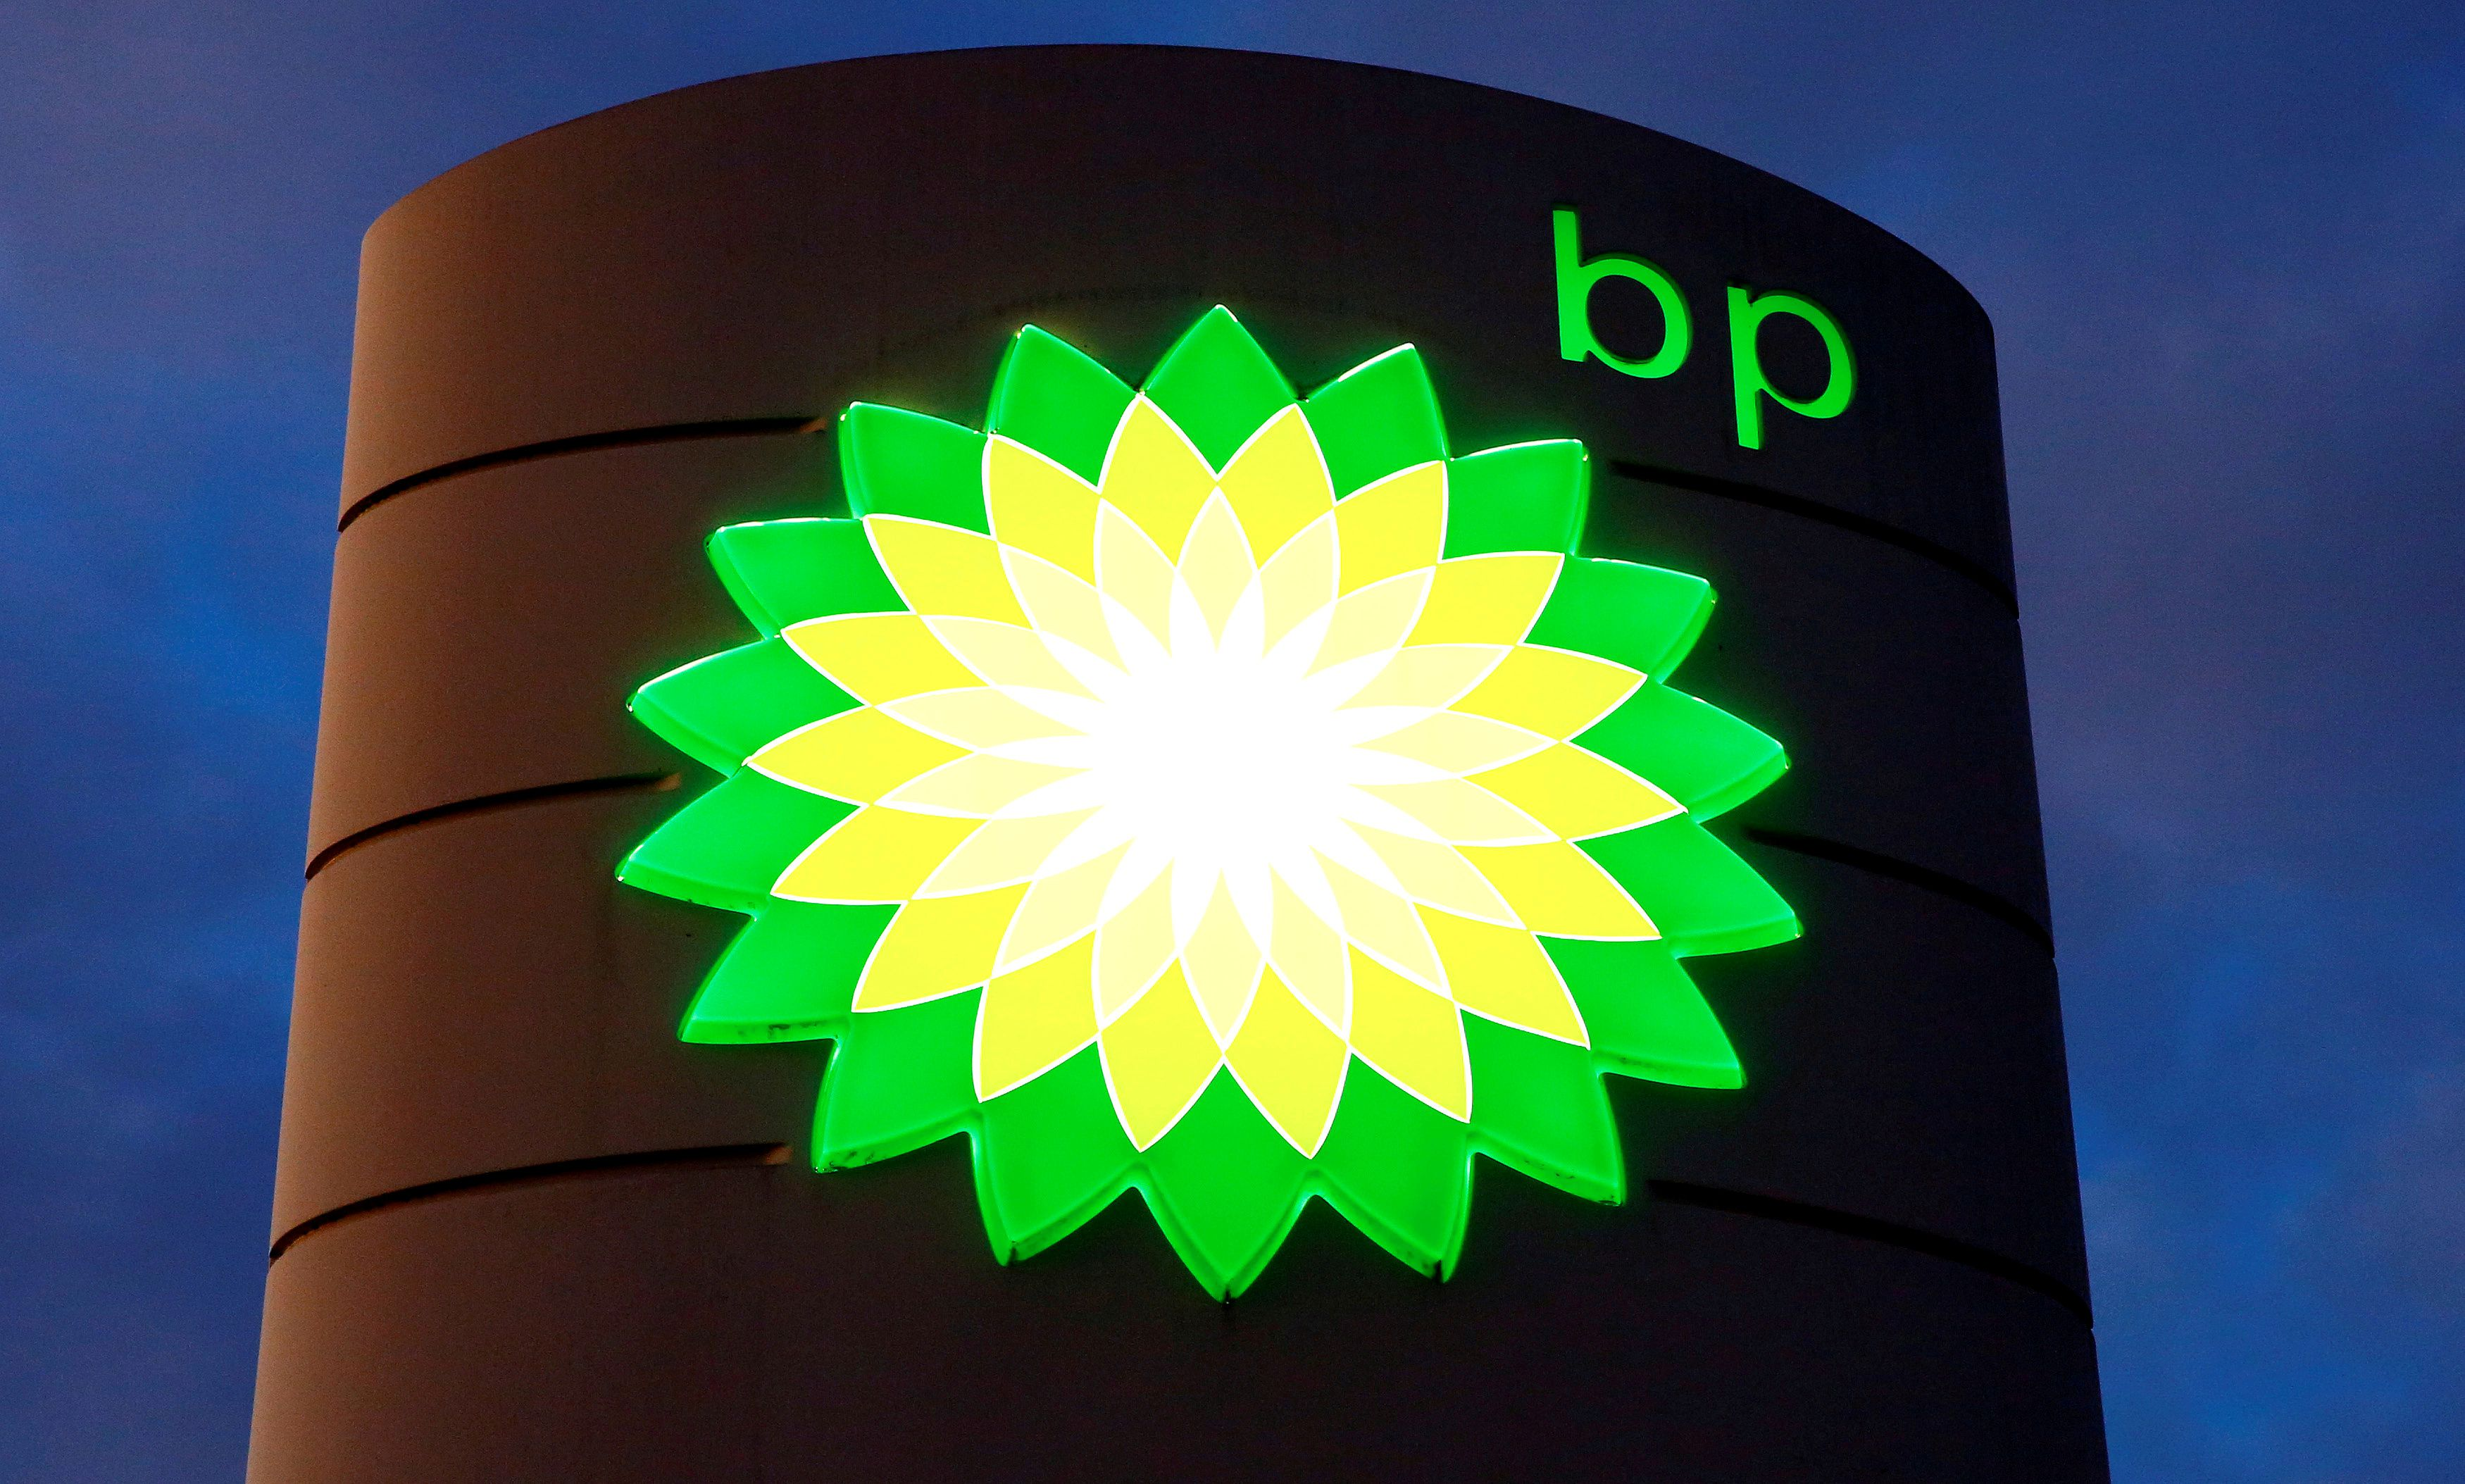 BP says erratic weather drove sharp acceleration in energy demand